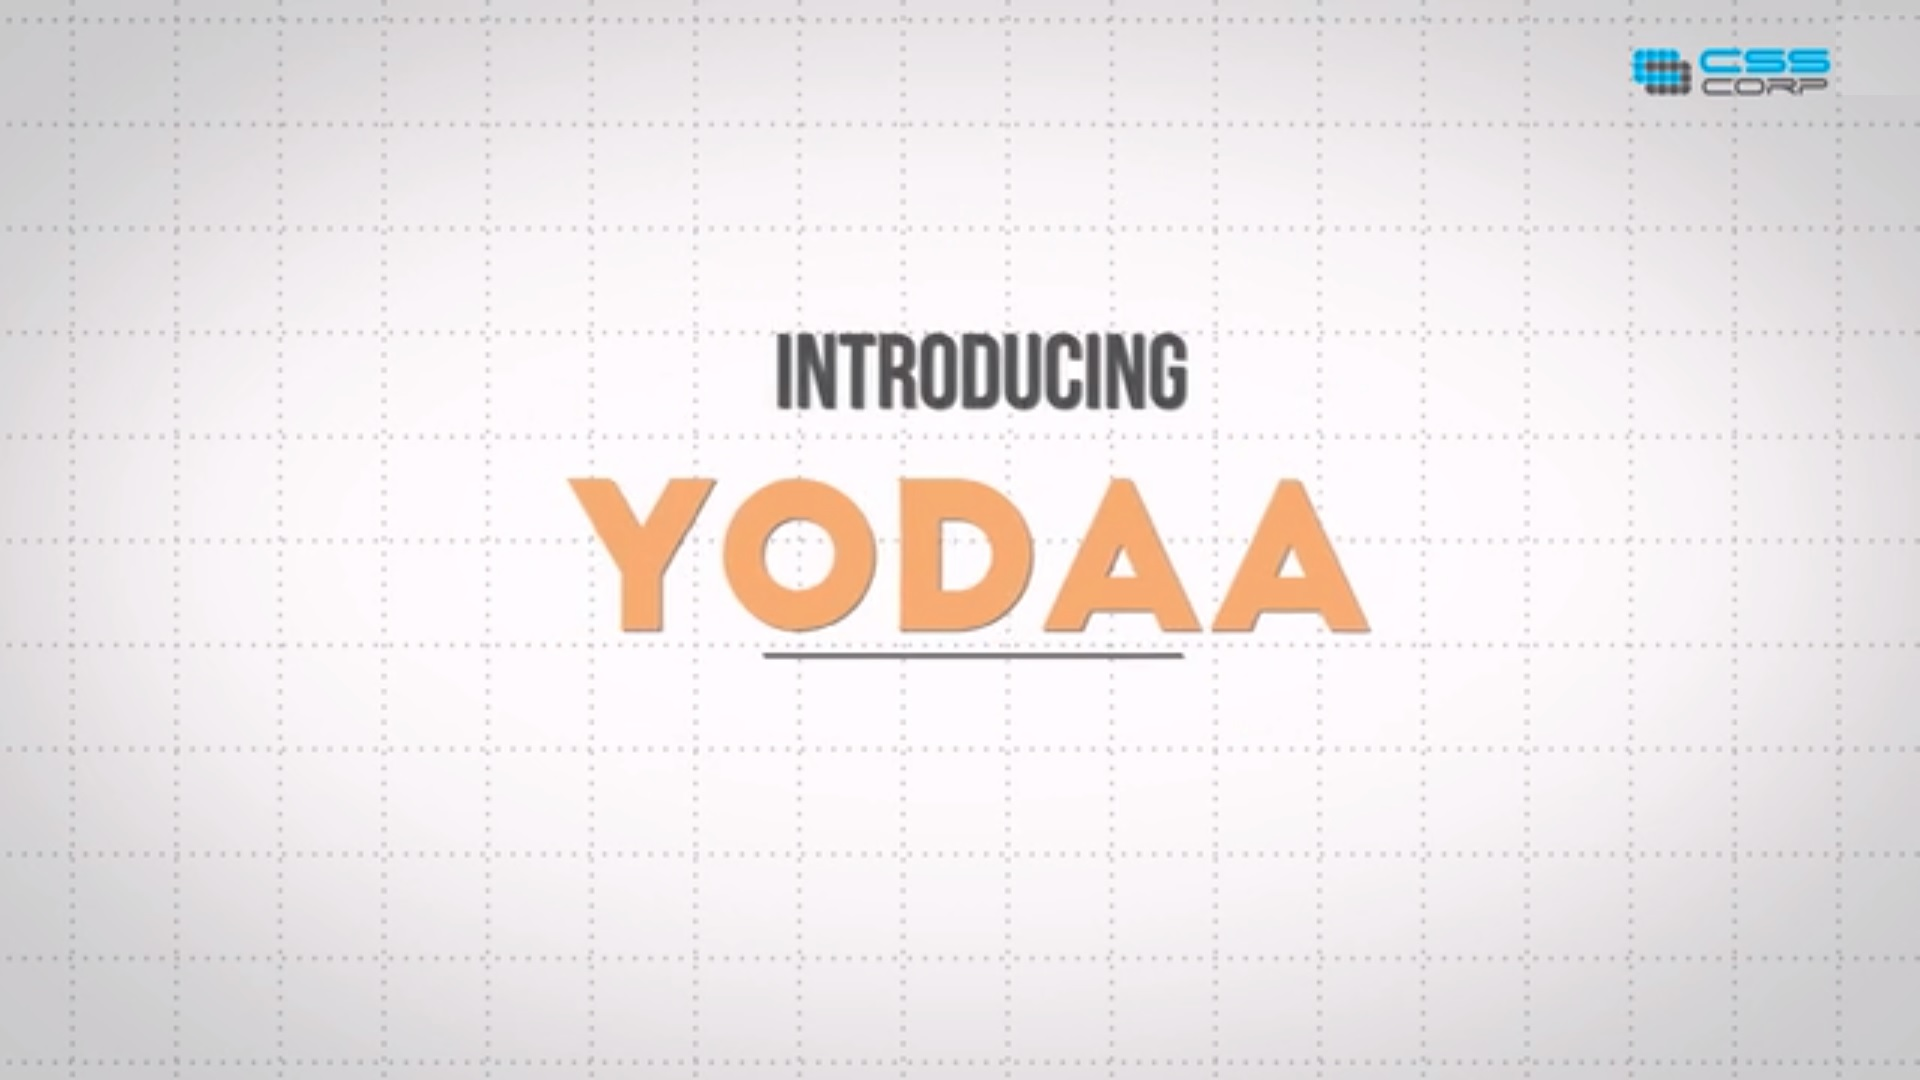 Introducing Yoda.jpg